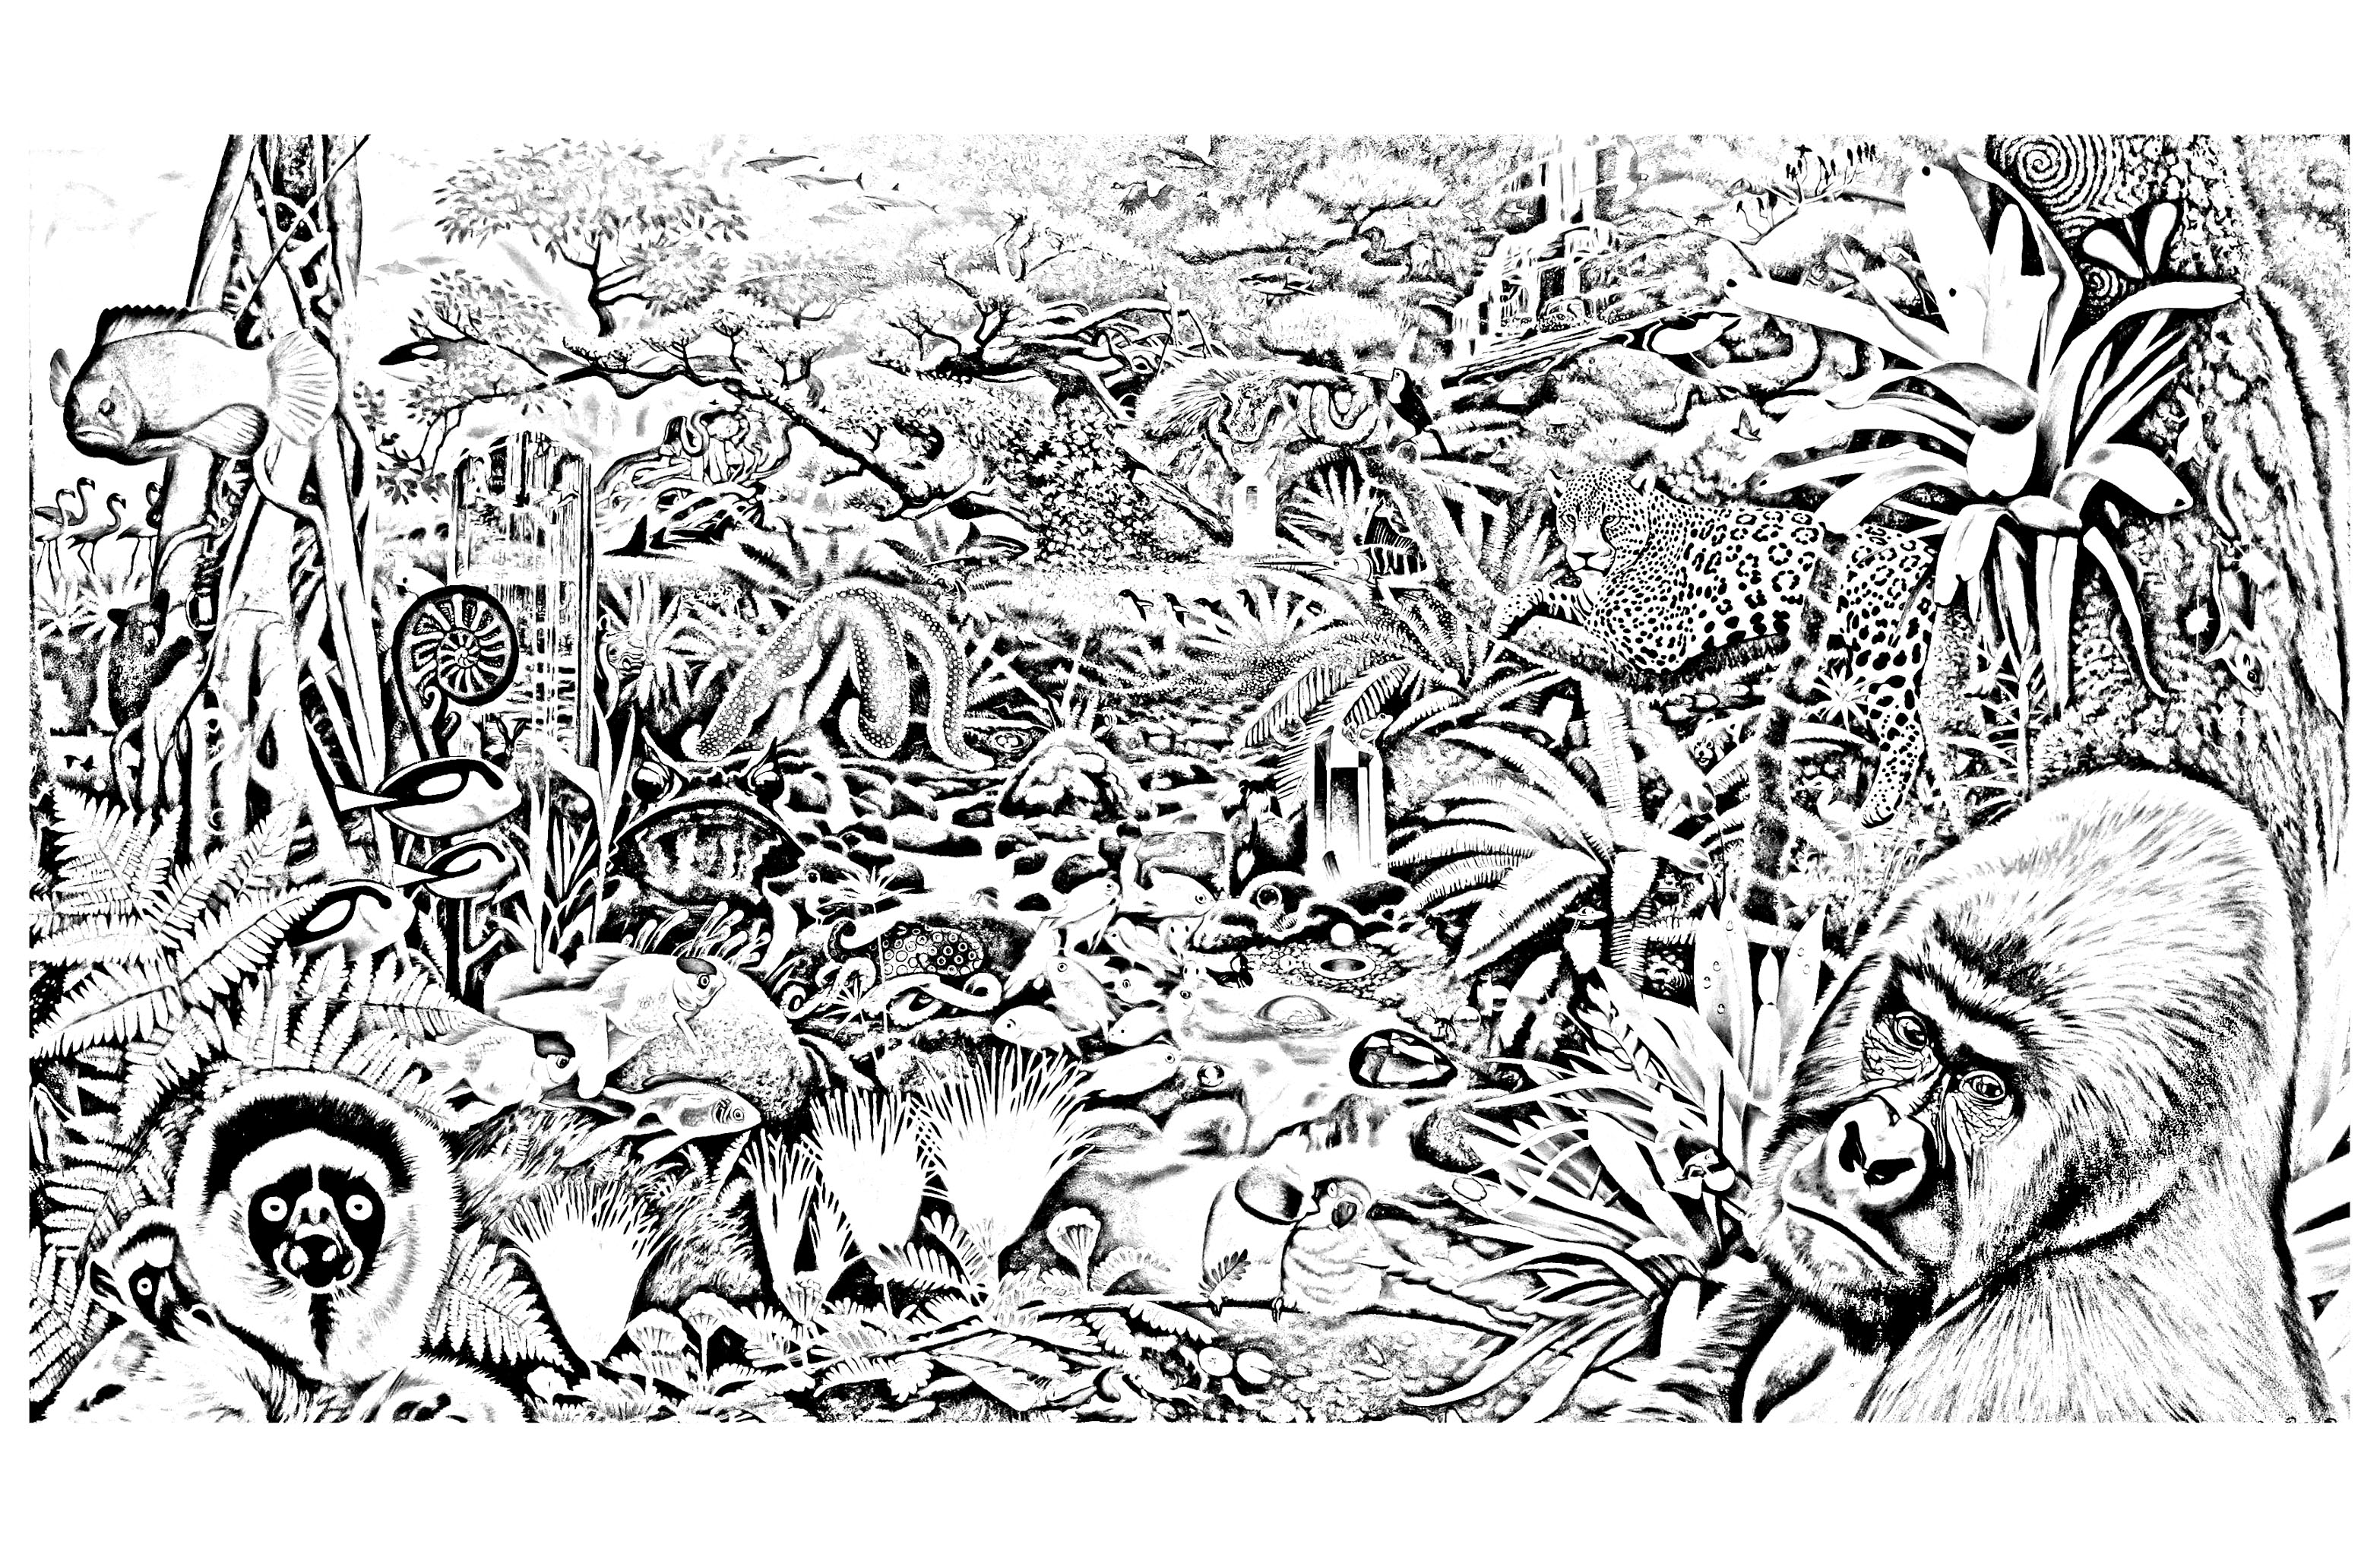 coloring pages of nature and animals nature forest autumn animals coloring page kindergarten animals nature of and coloring pages